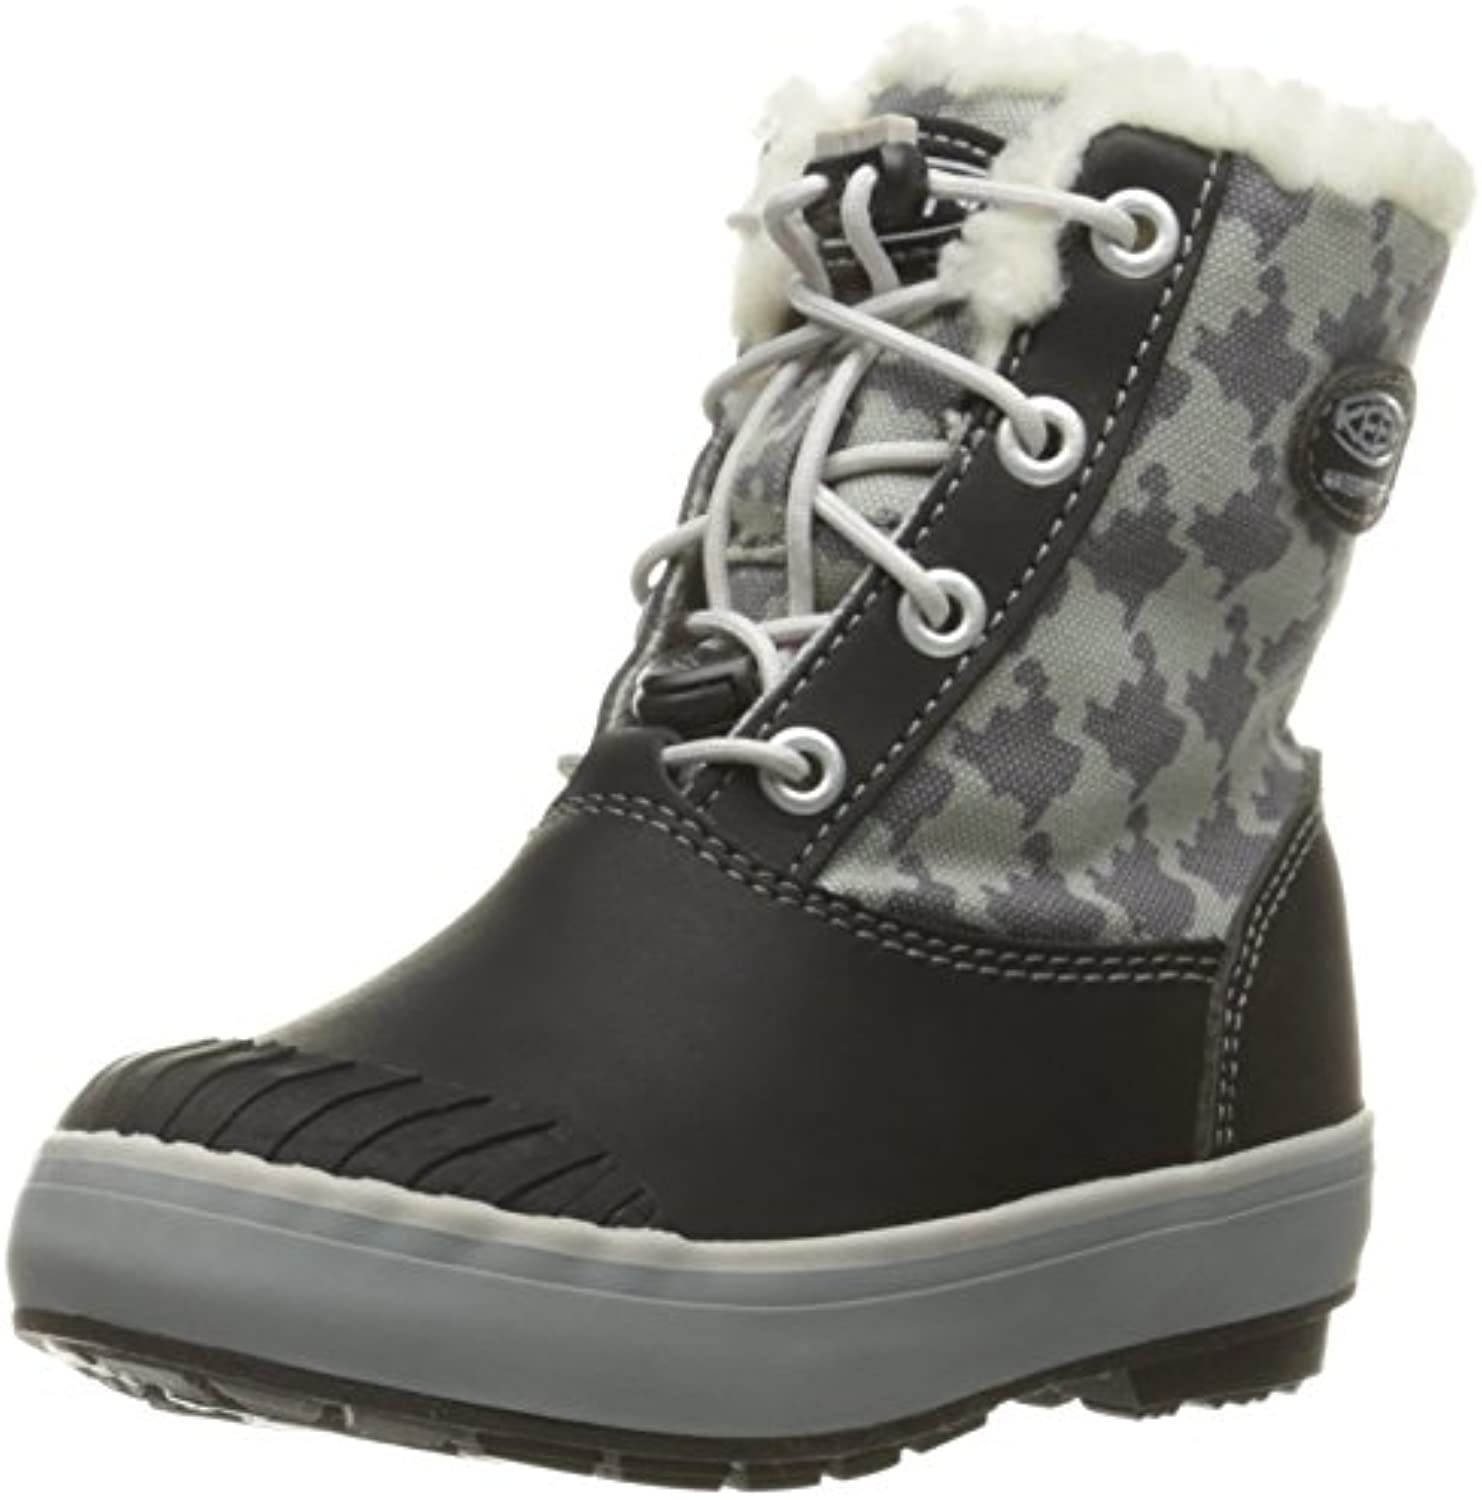 Keen ELSA Boots Youths Black/Houndstooth 2017 Stiefel